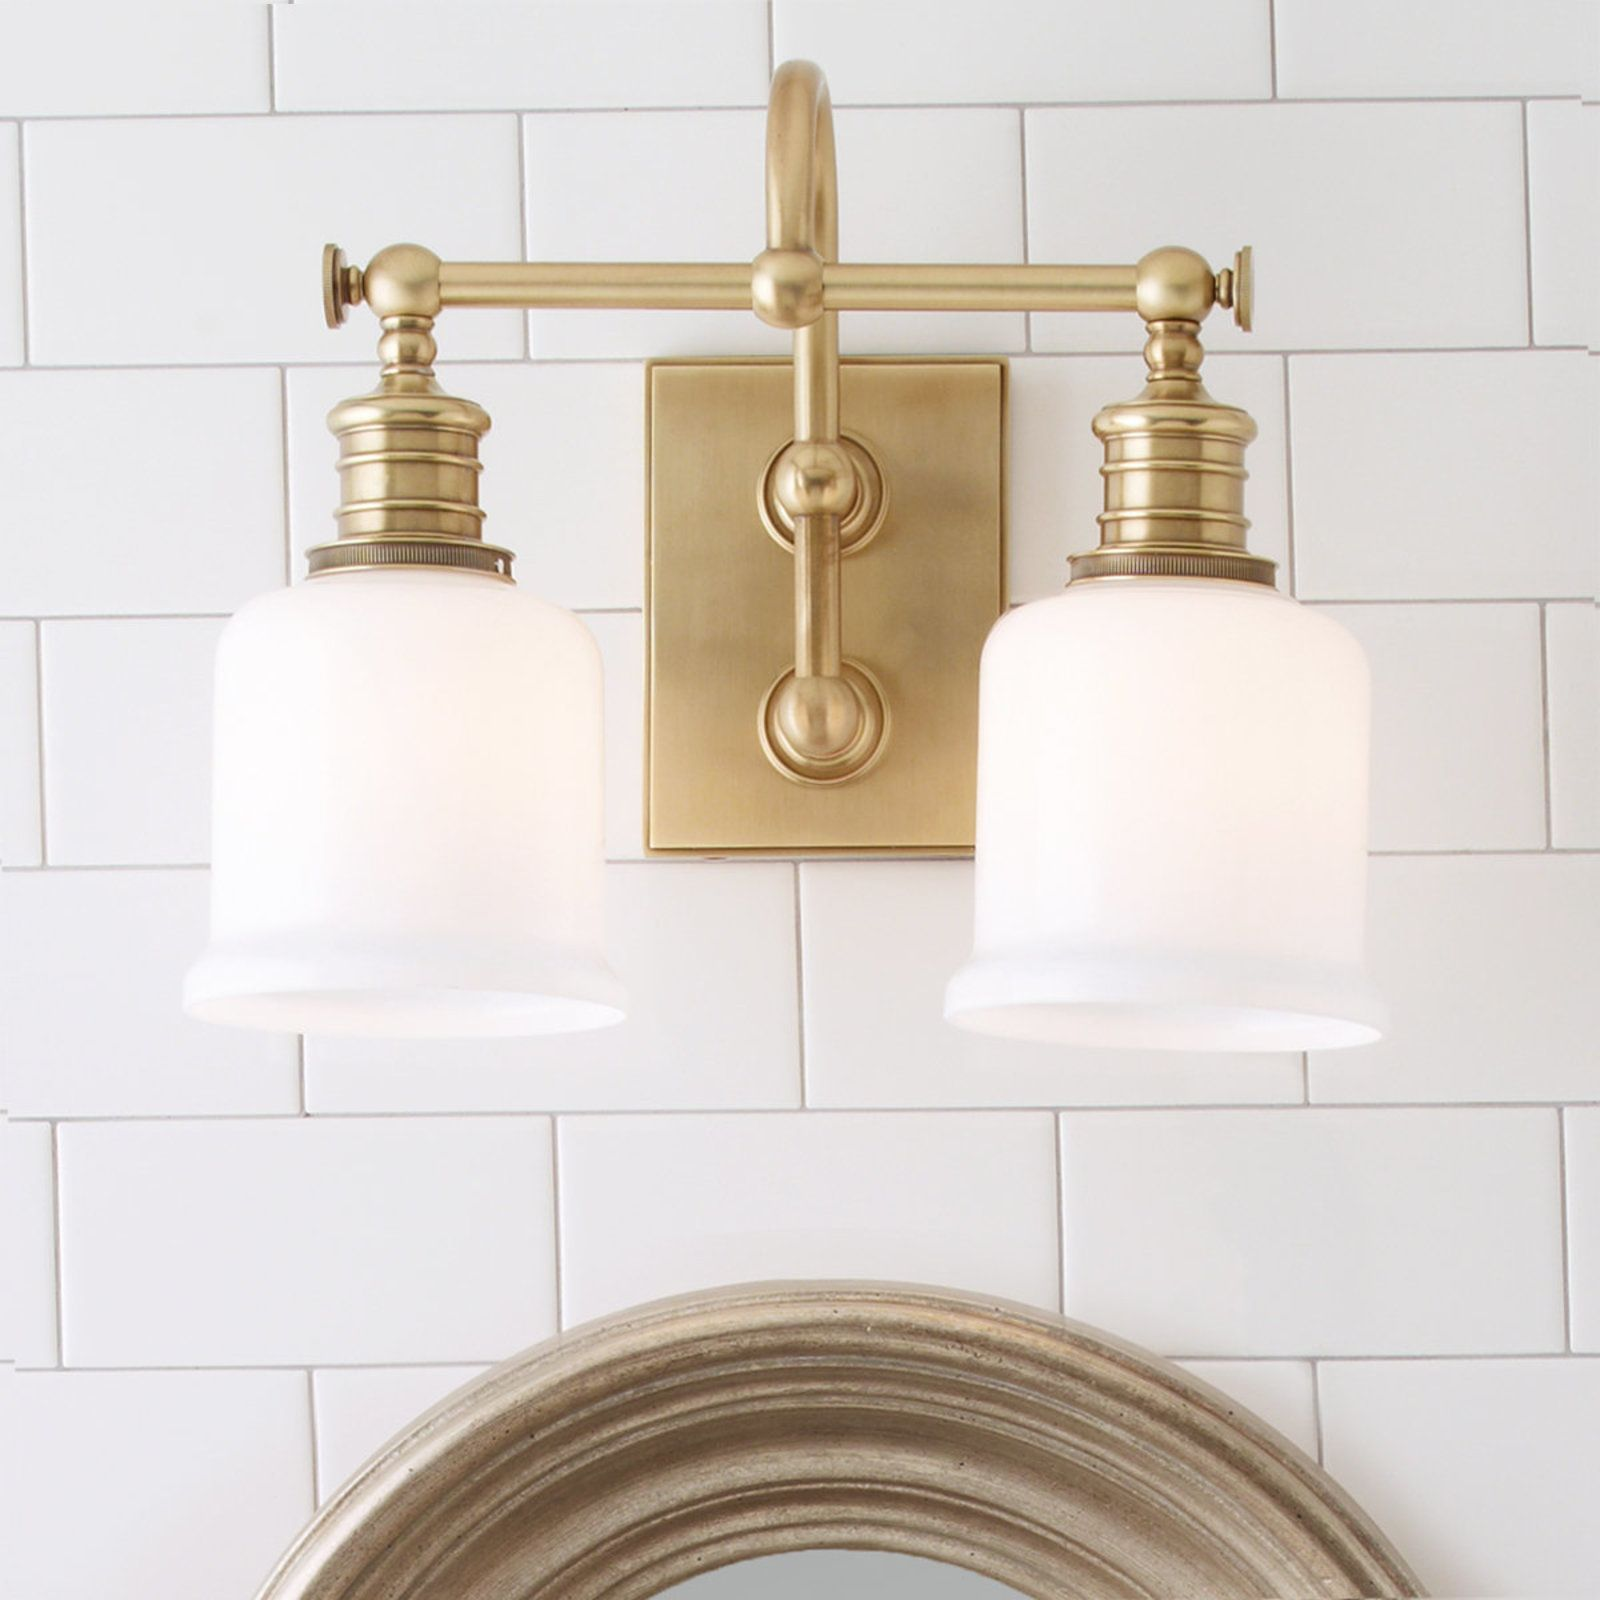 Photo of Well Appointed Bath Light – 2 Light